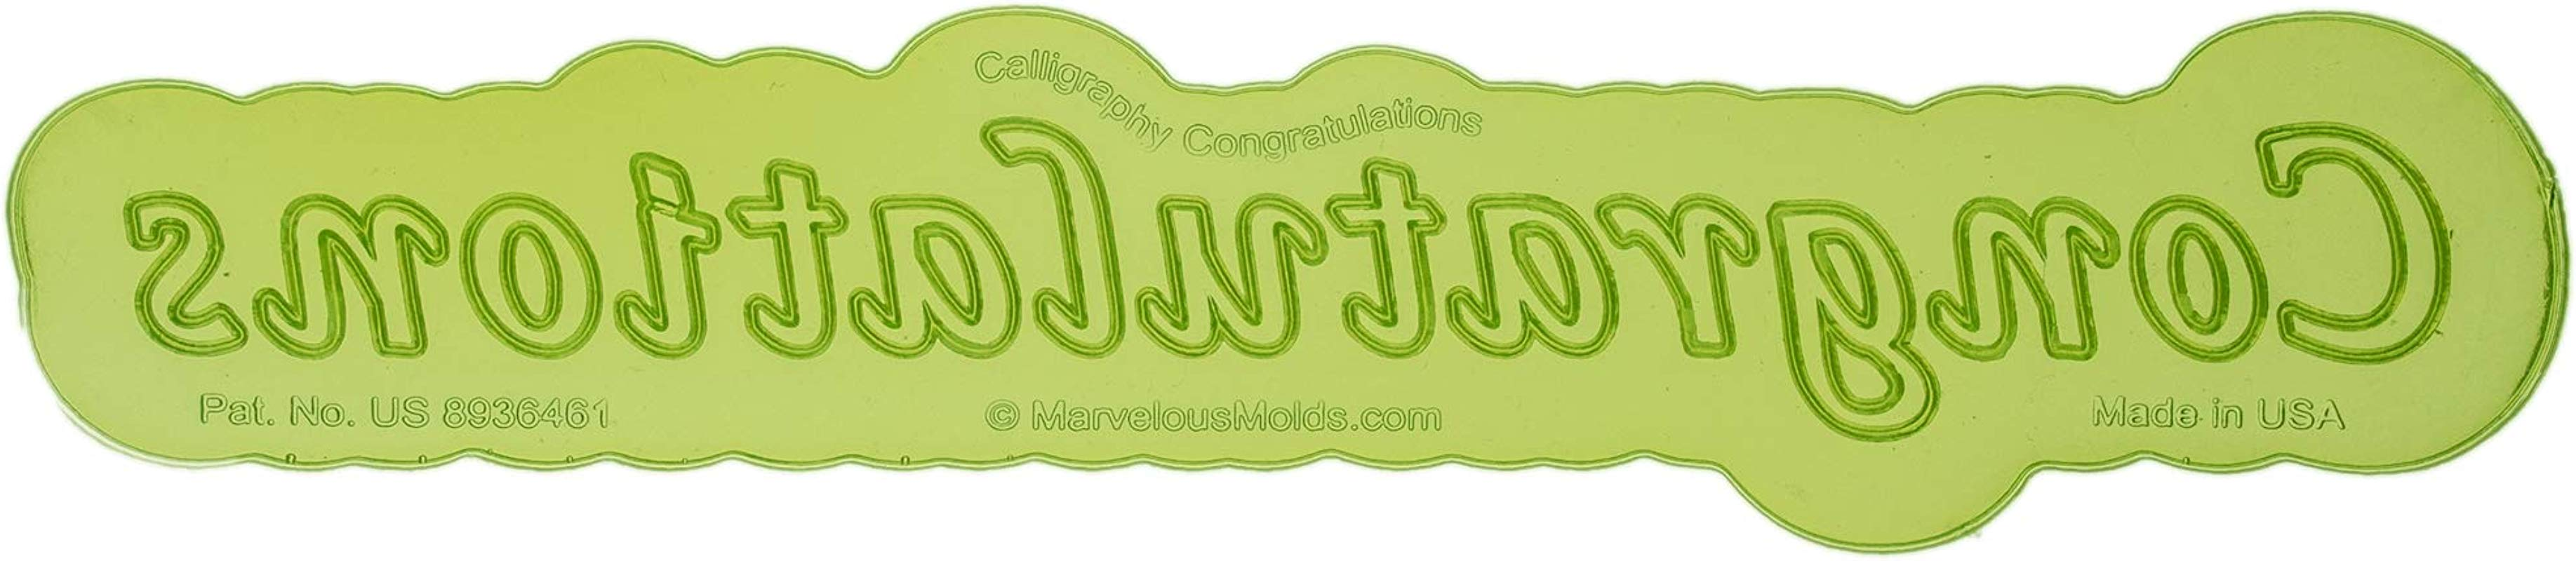 Calligraphy Congratulations Flexabet Silicone Phrase Maker For Cakes By Marvelous Molds